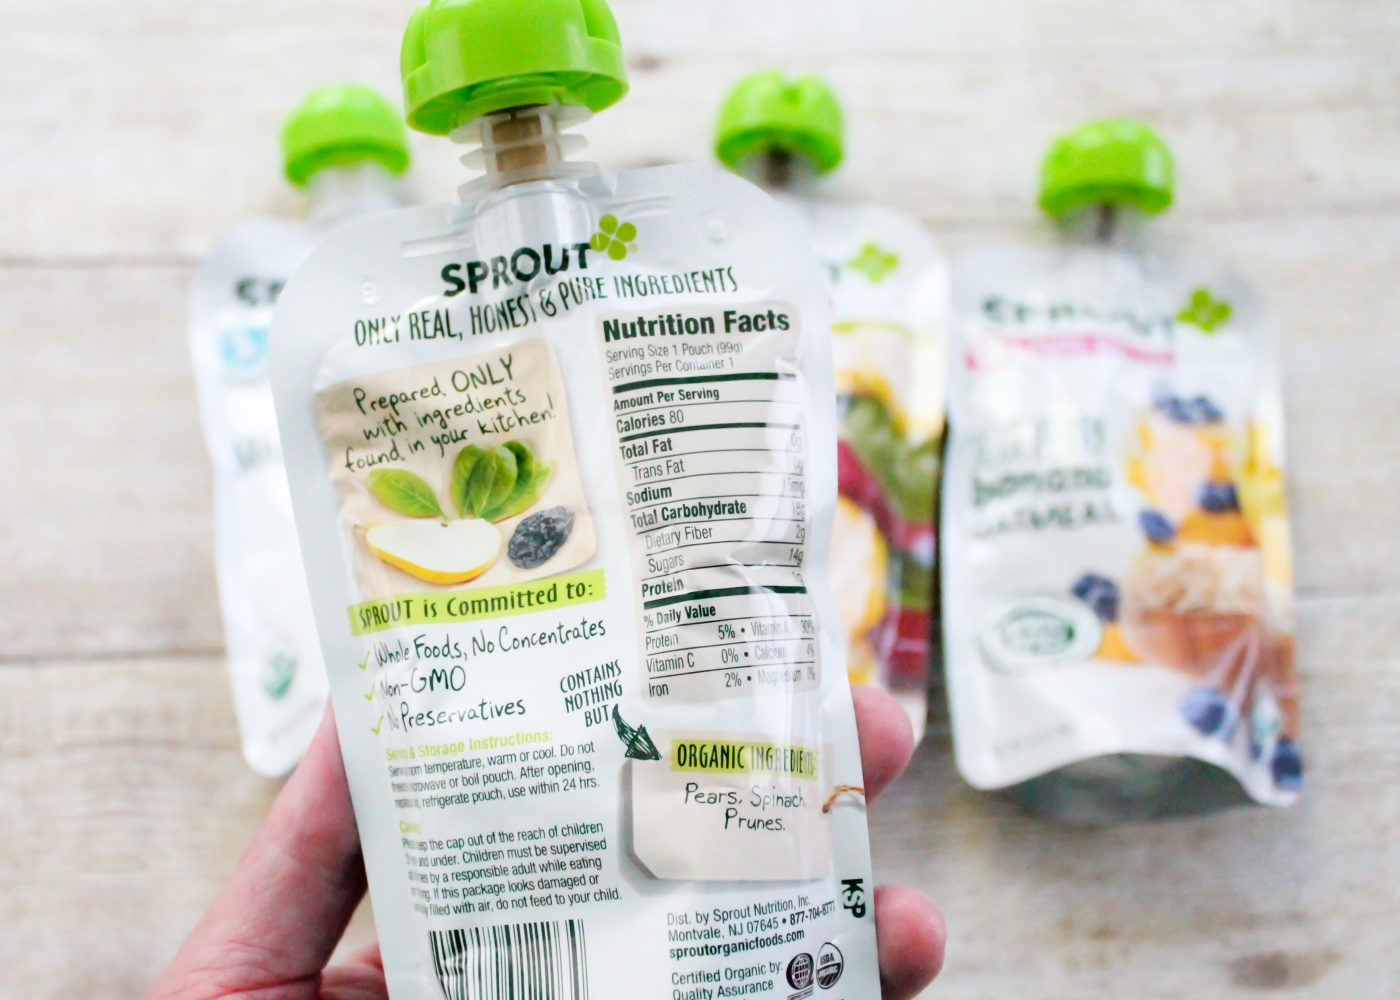 Sprout Organics Keep it honest, Make it real